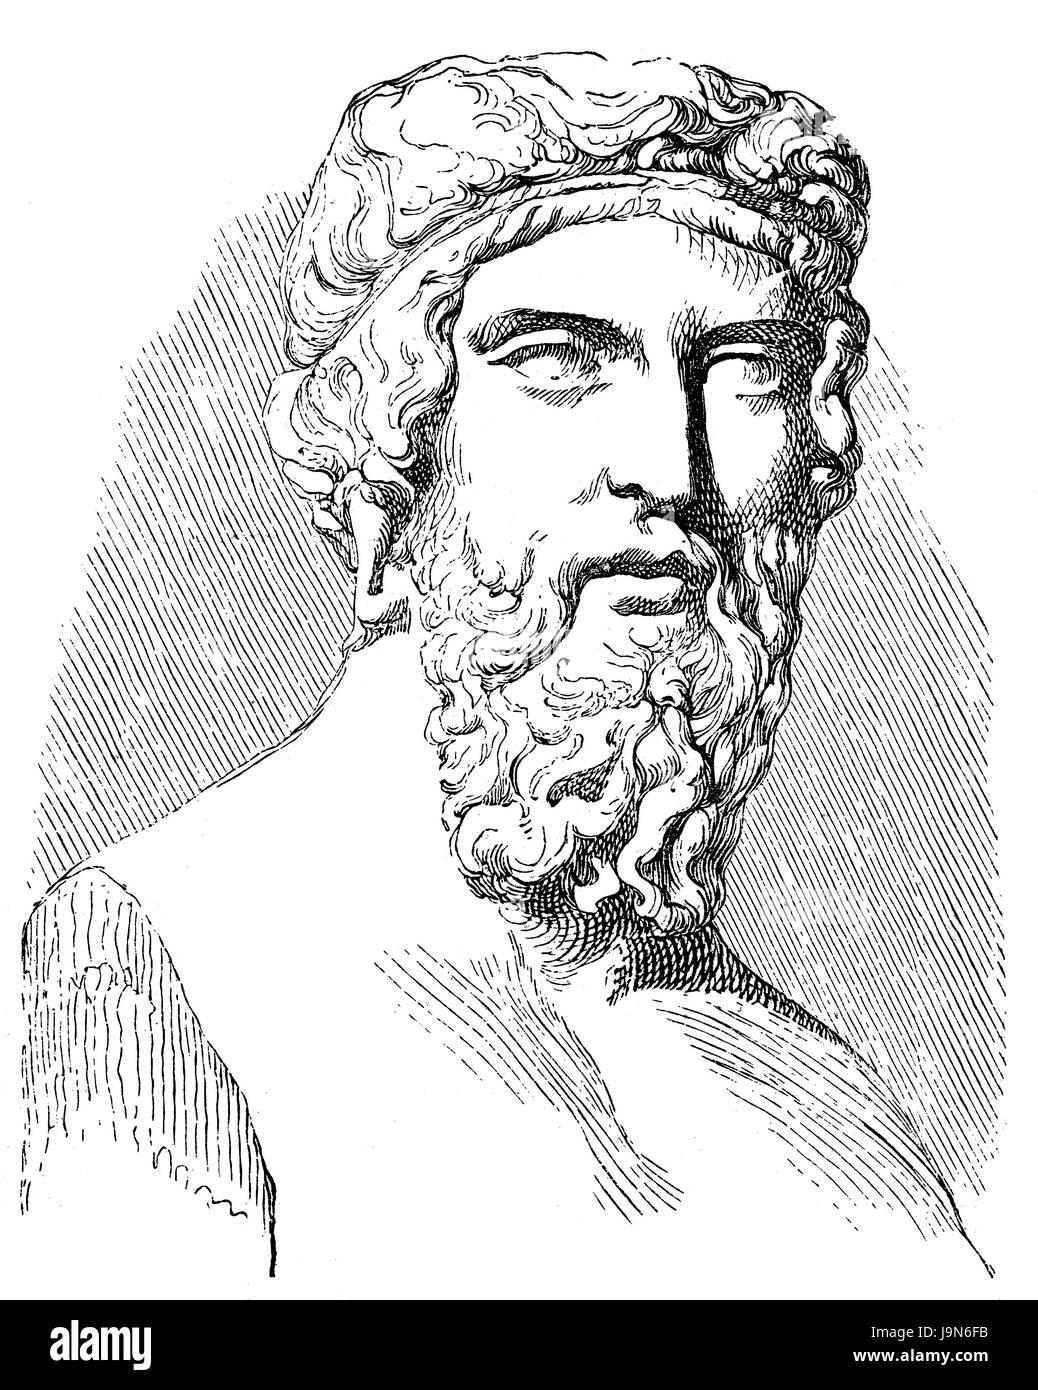 Platon or Plato, 428 BC - 348 BC, an ancient Greek philosopher - Stock Image